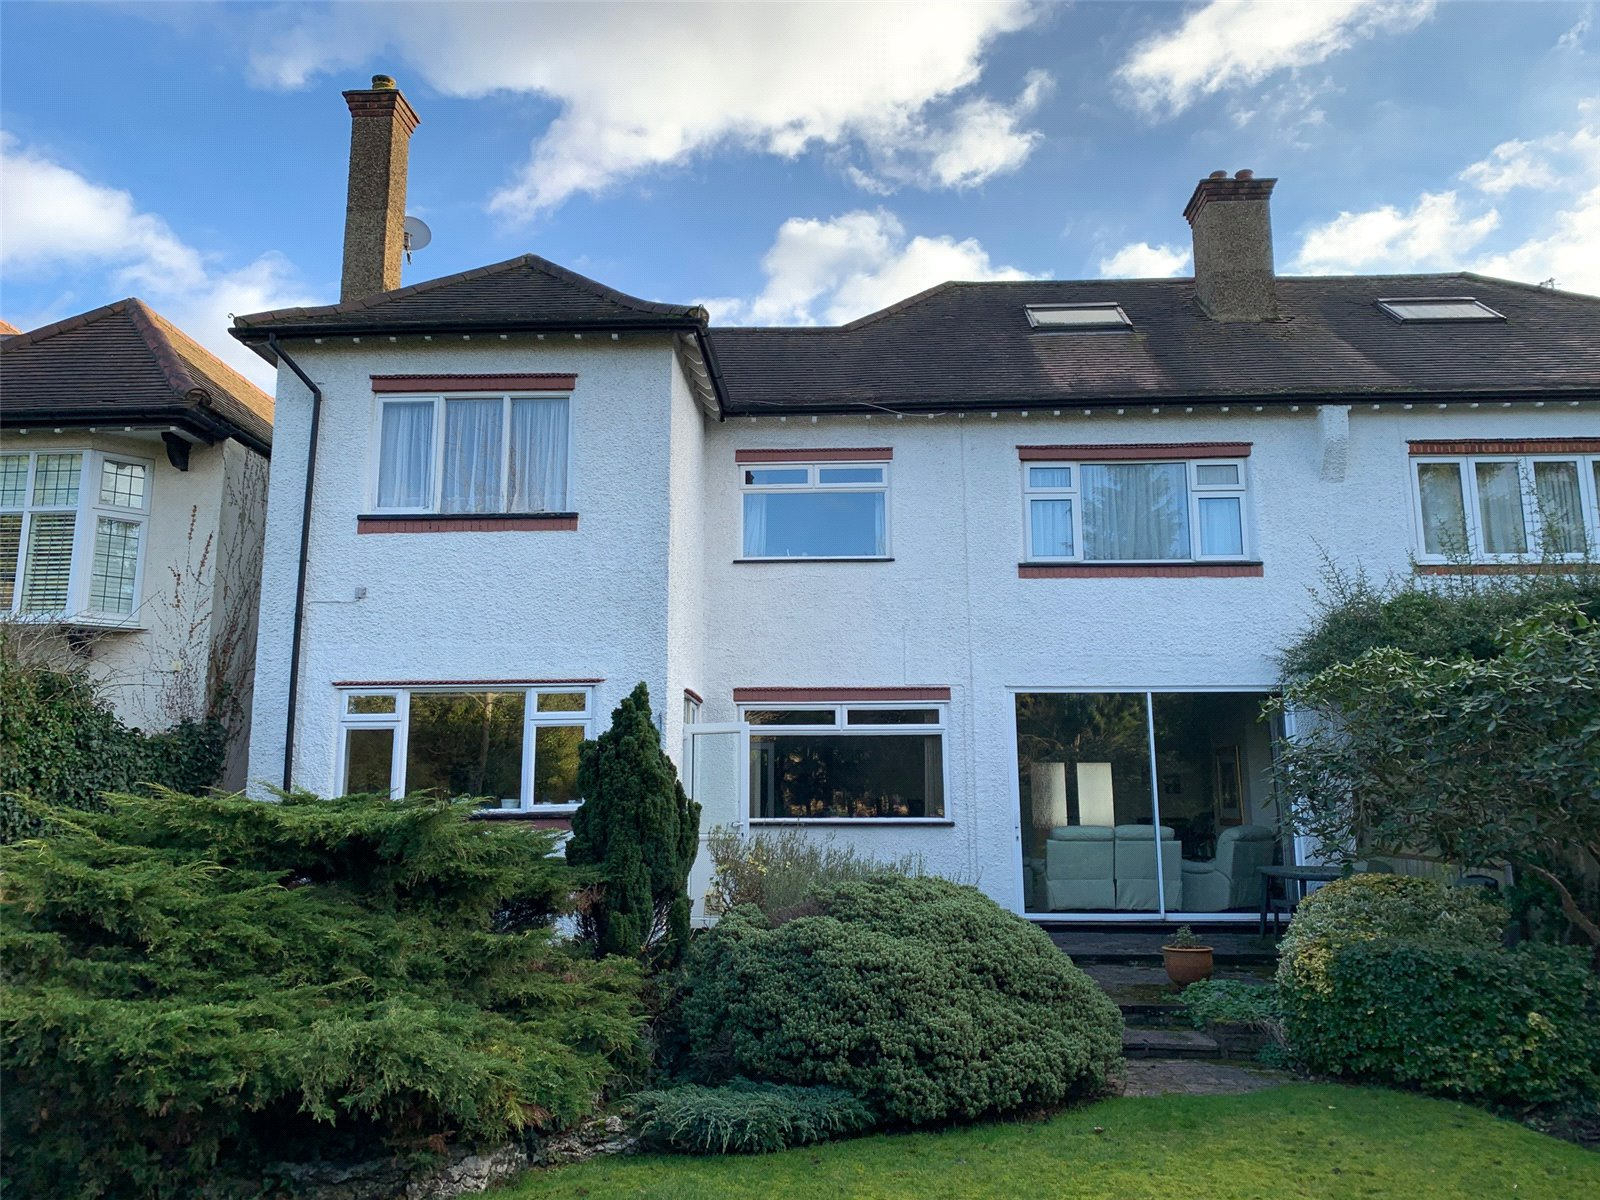 4 bed house for sale in Whetstone, N20 9ED 7